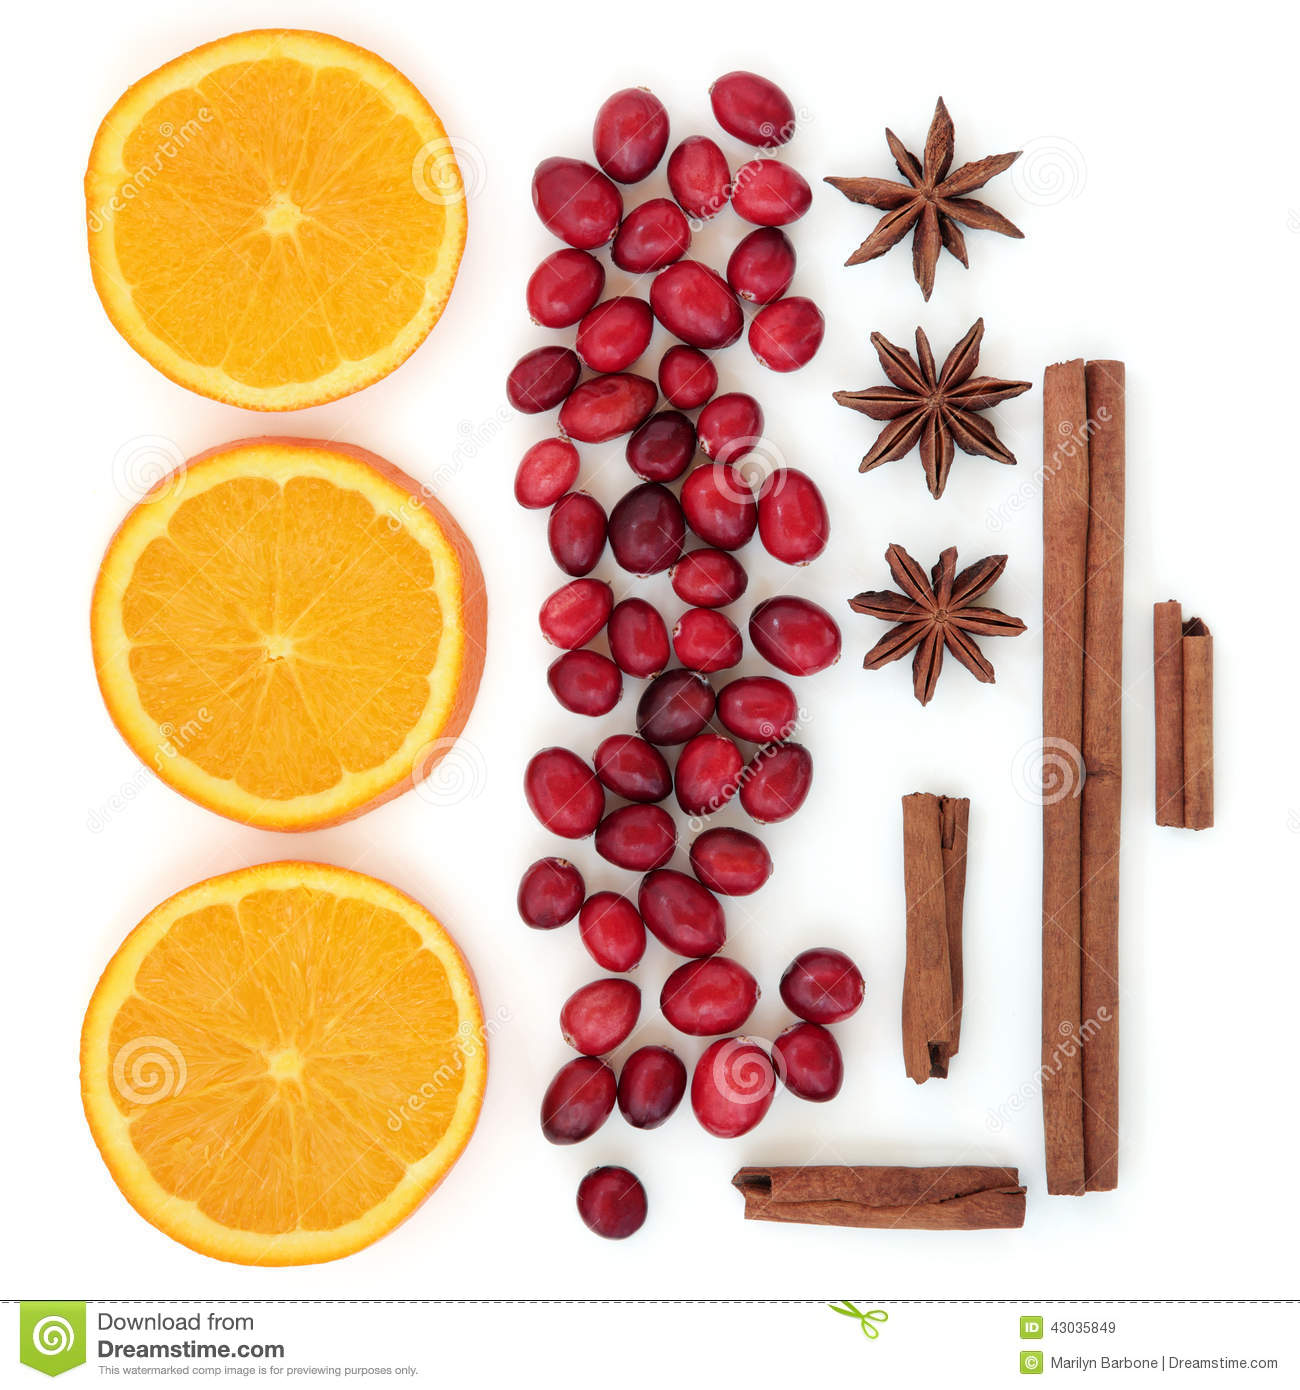 Cranberry orange and spices stock photo image 43035849 for Spiced cranberry sauce with orange and star anise